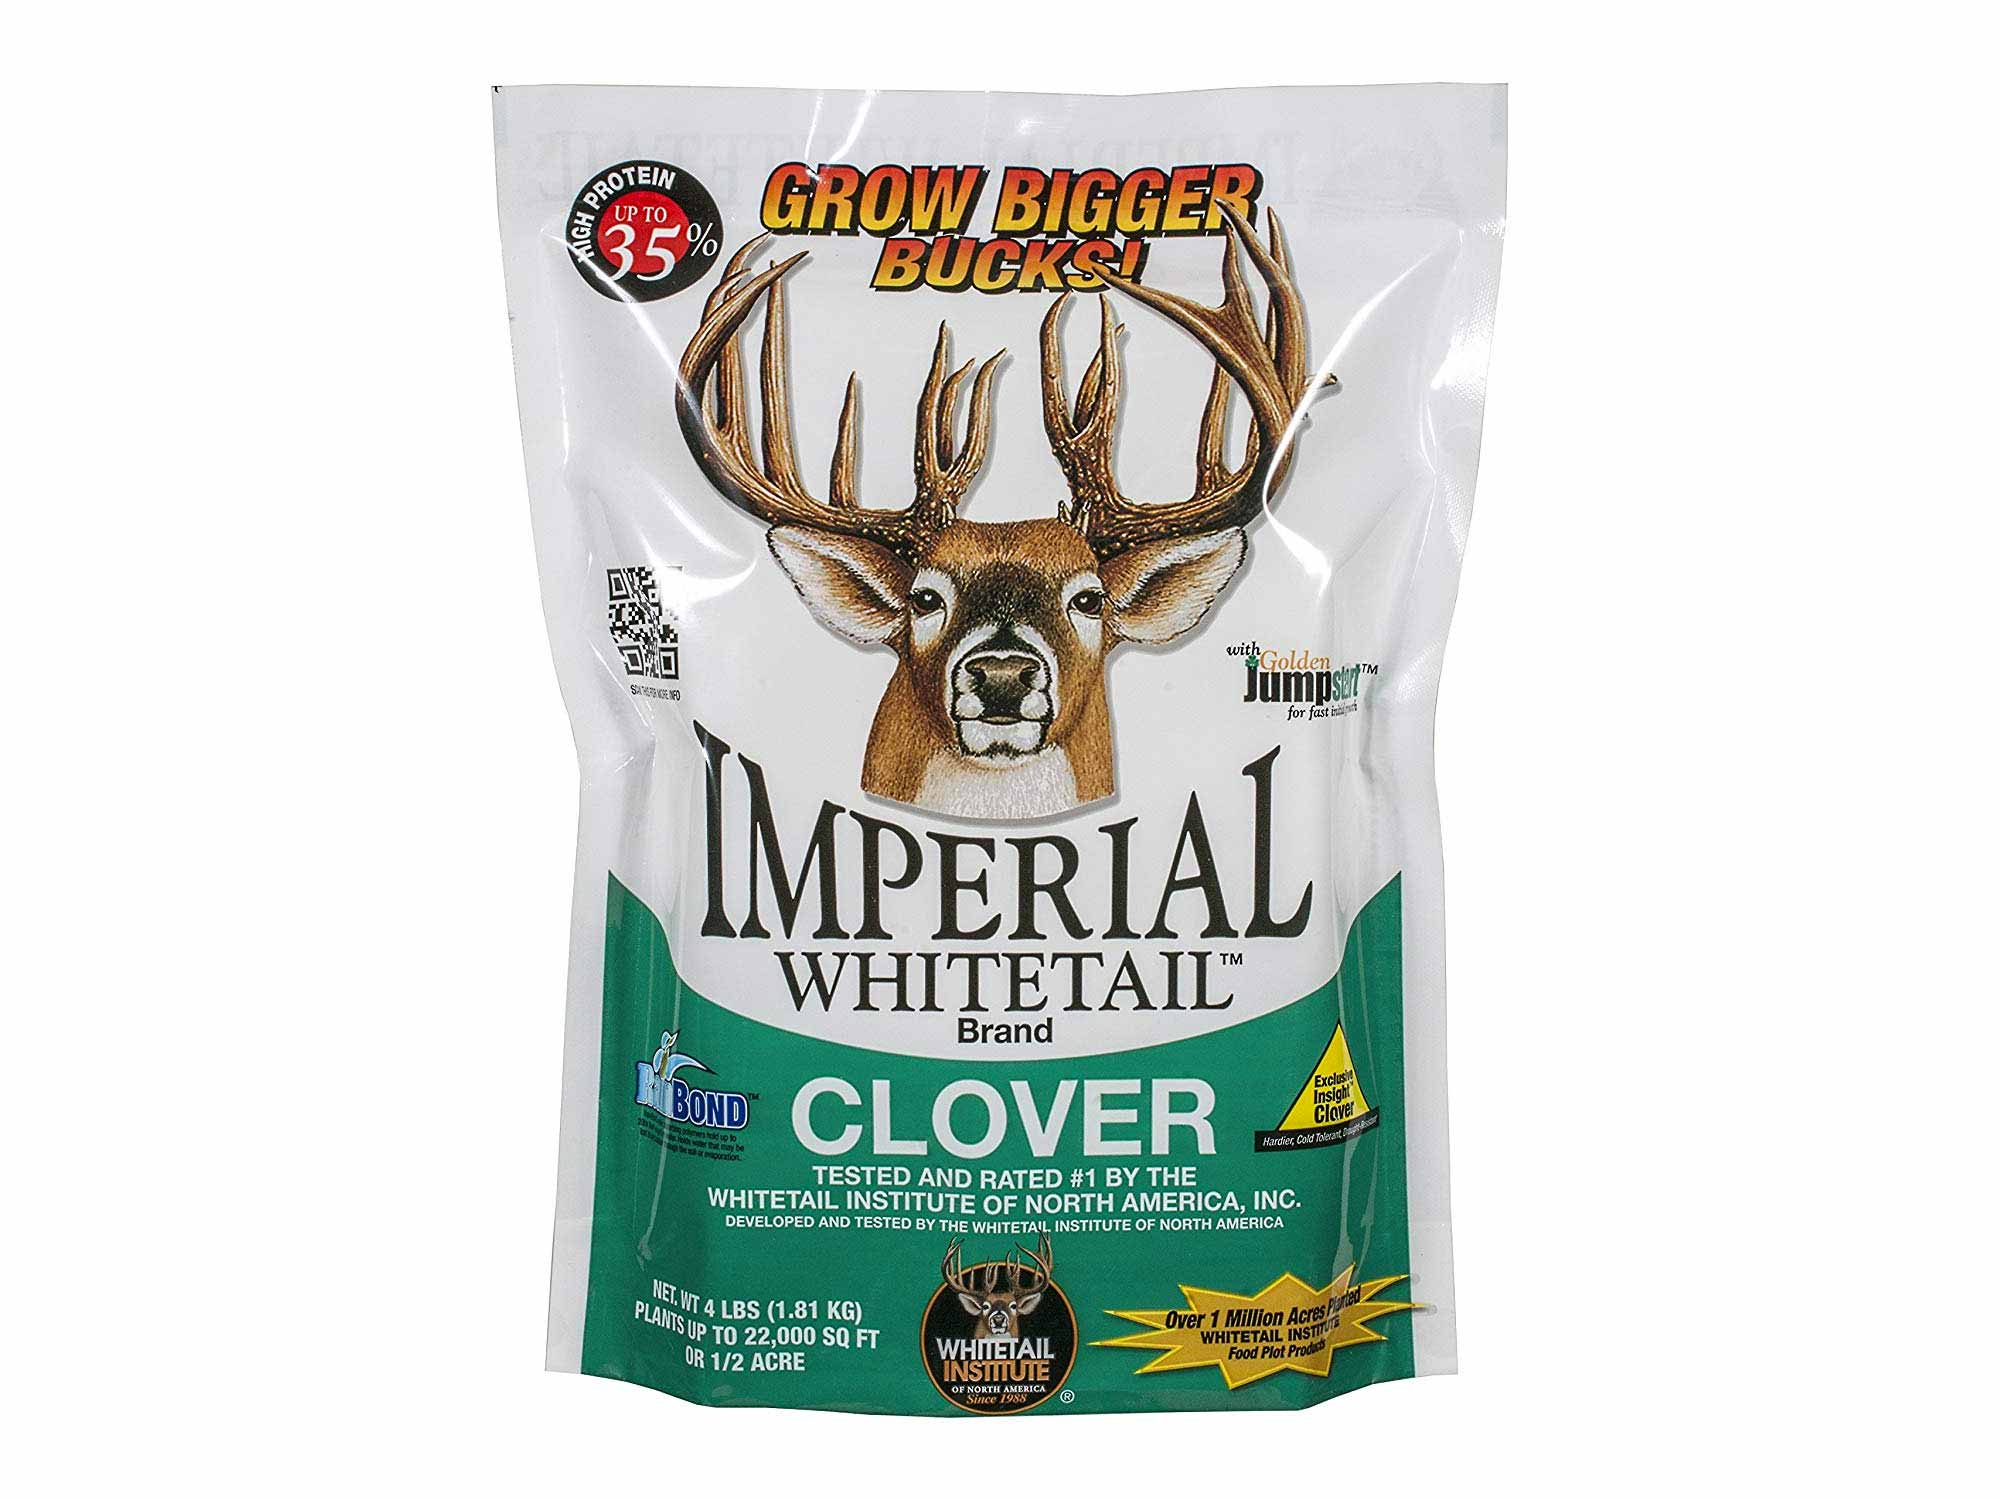 Imperial whitetail clover deer feed